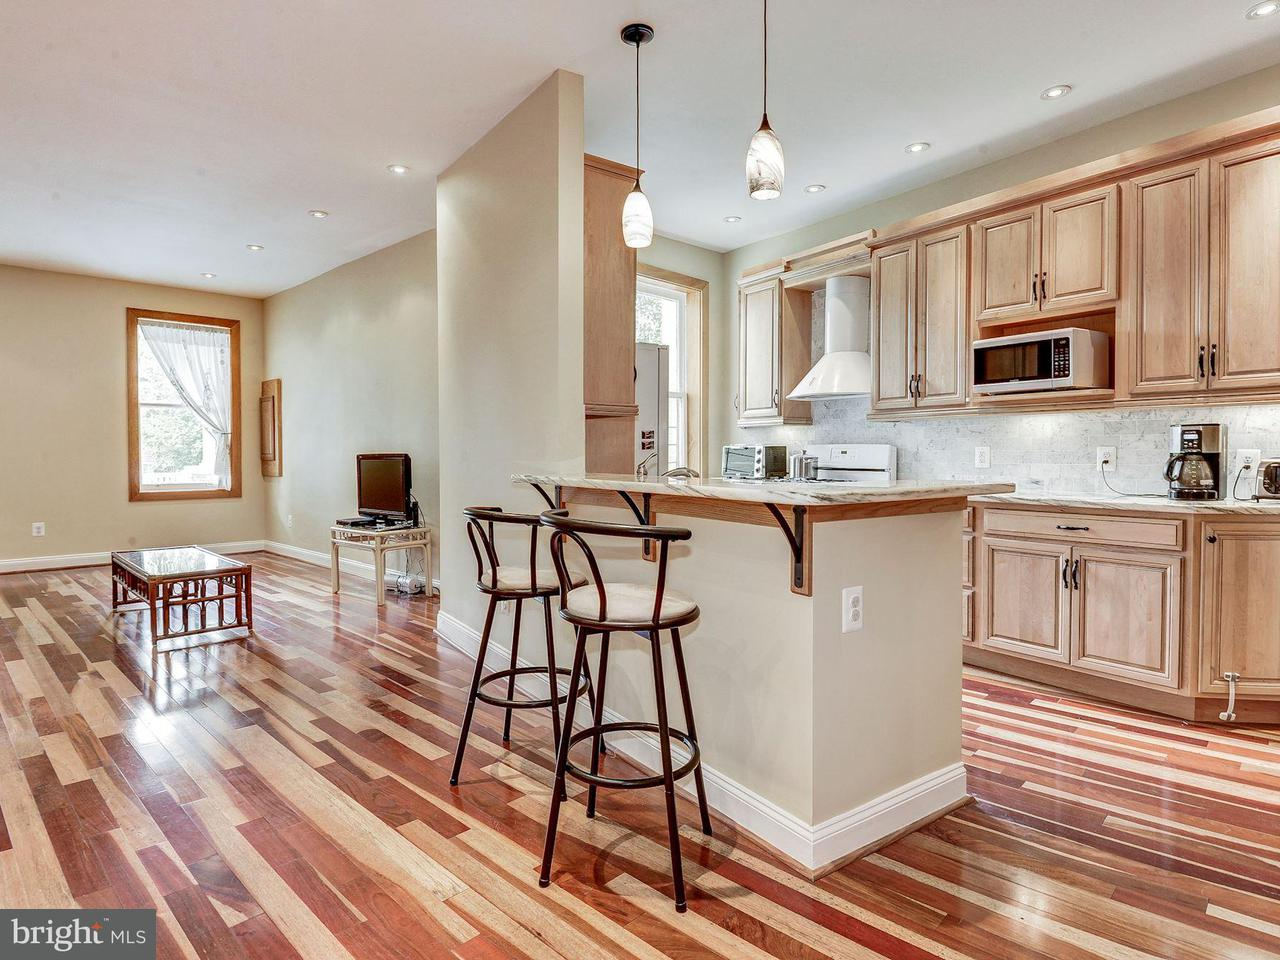 Additional photo for property listing at 1933 Park Rd Nw 1933 Park Rd Nw Washington, 哥倫比亞特區 20010 美國